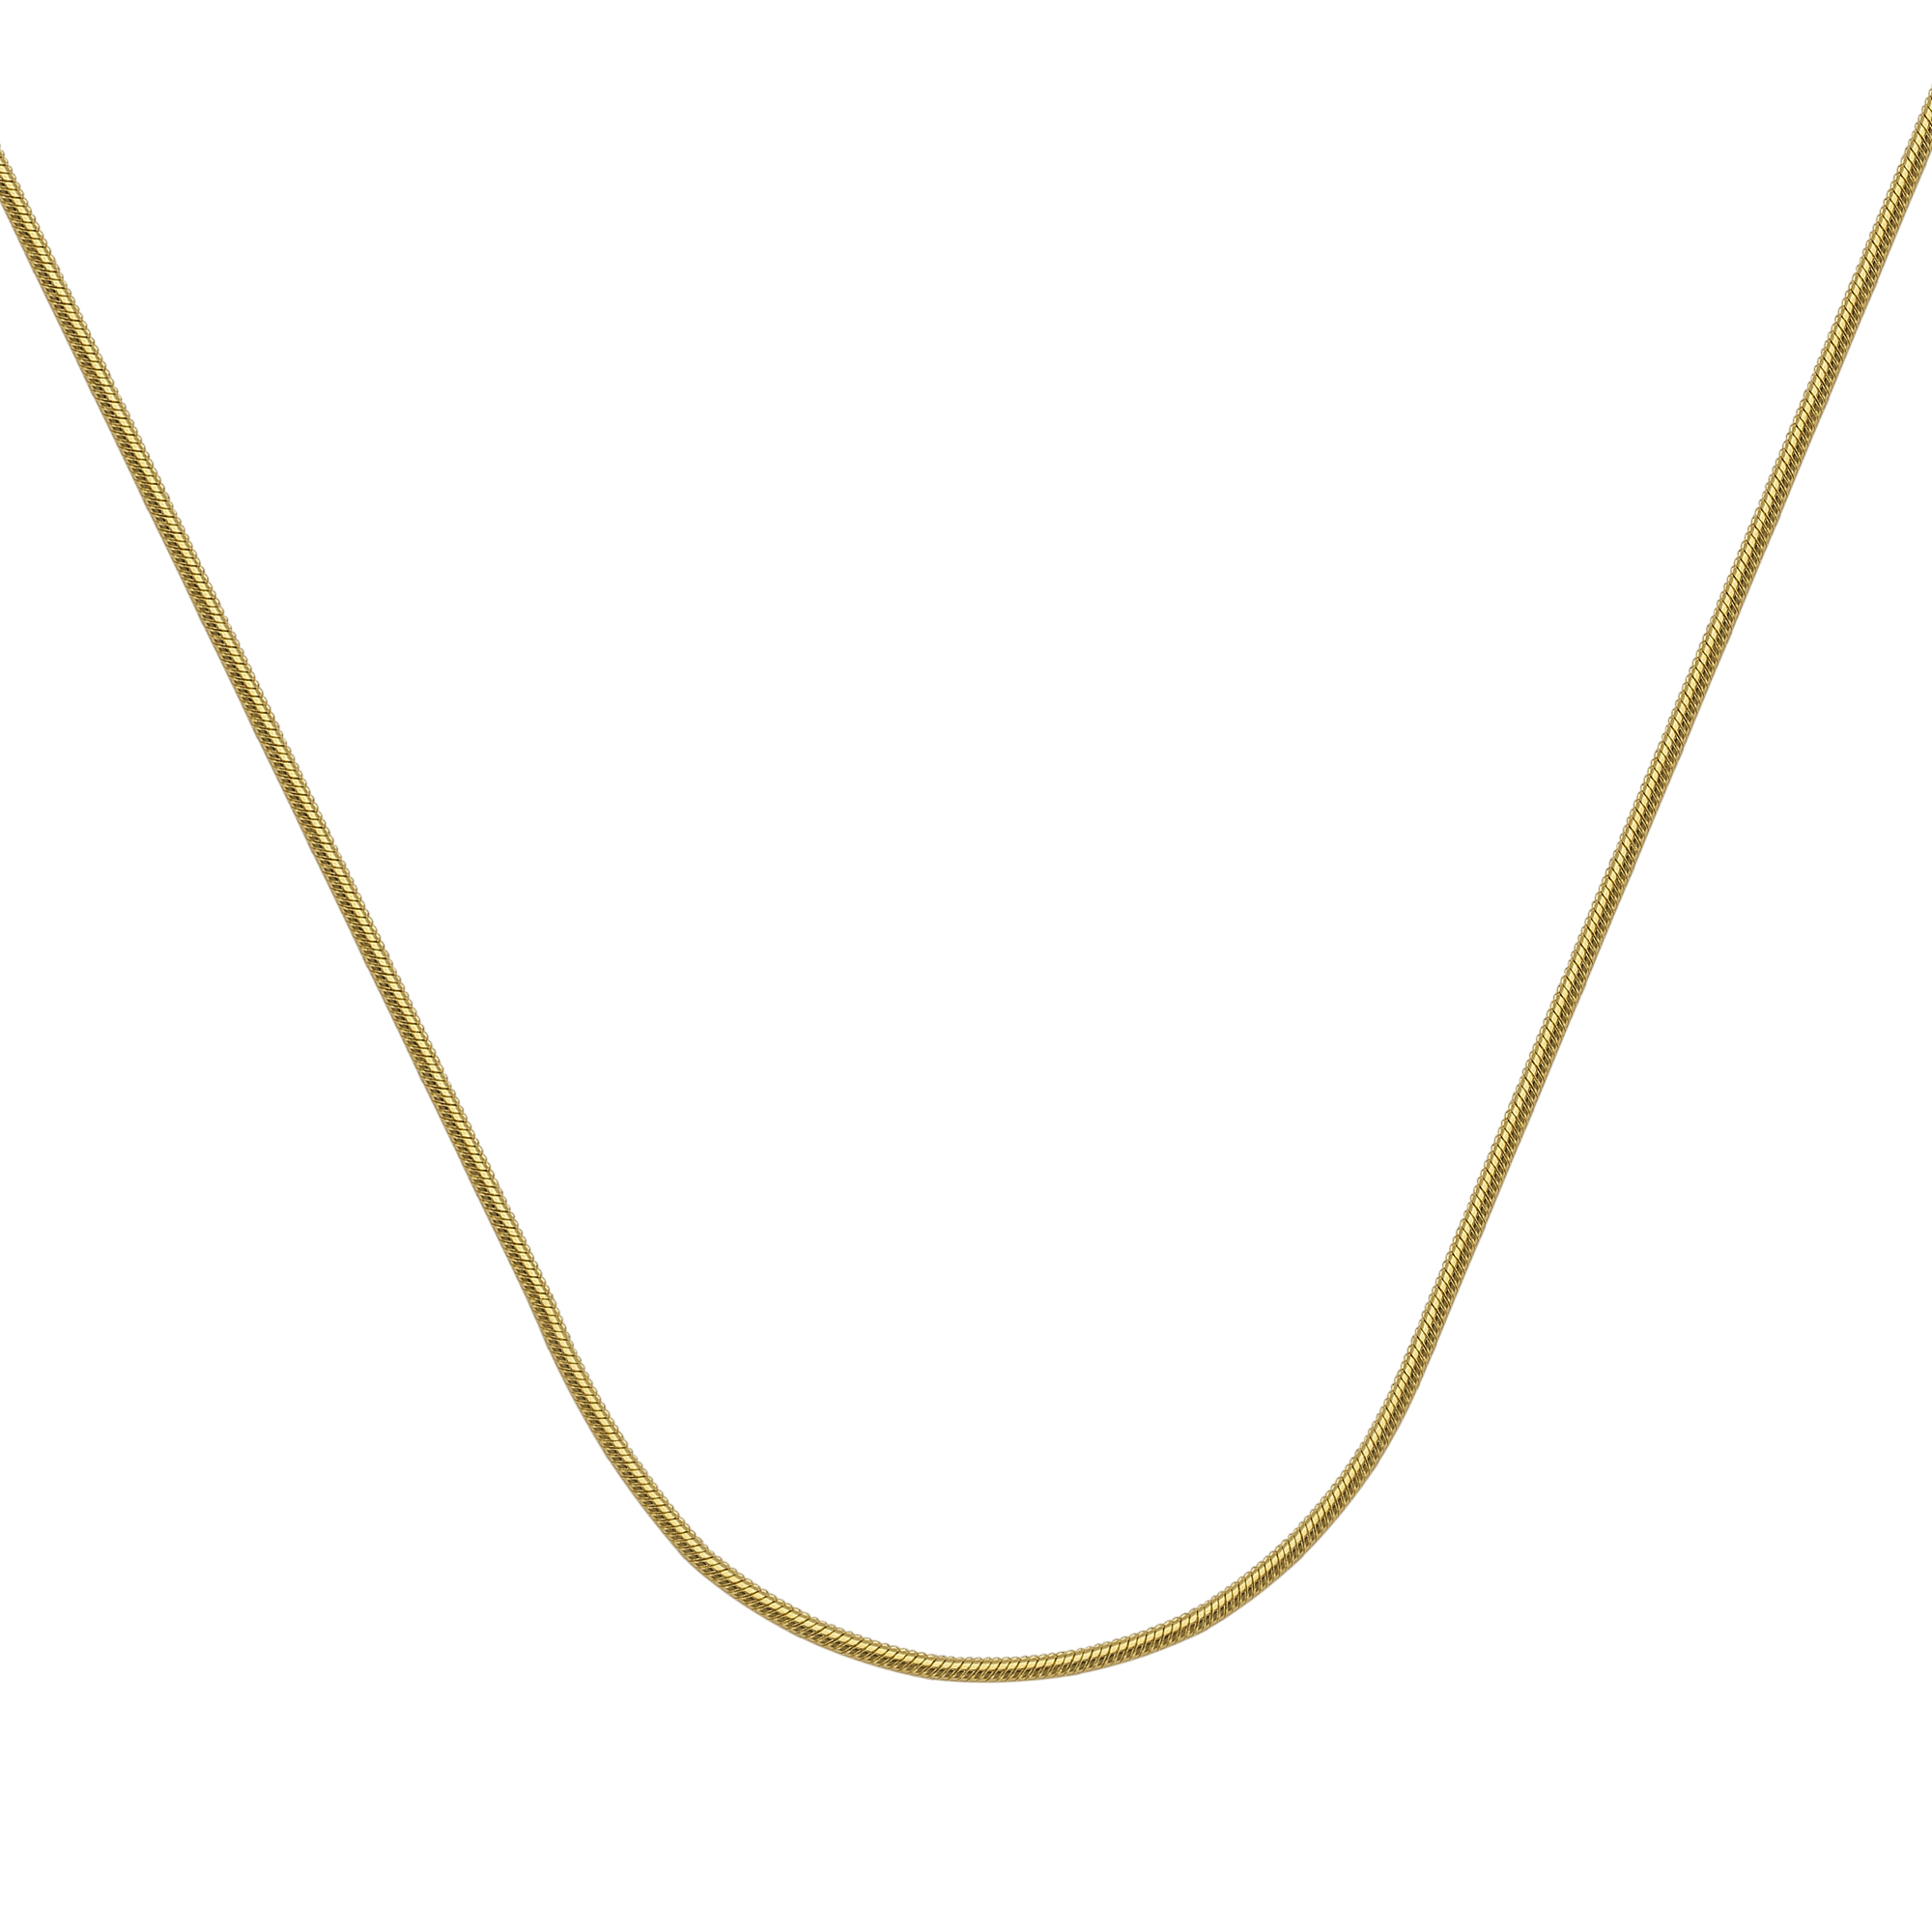 Snake Chain , 14Kt Gold  Snake Chain With Lobster Lock / 20